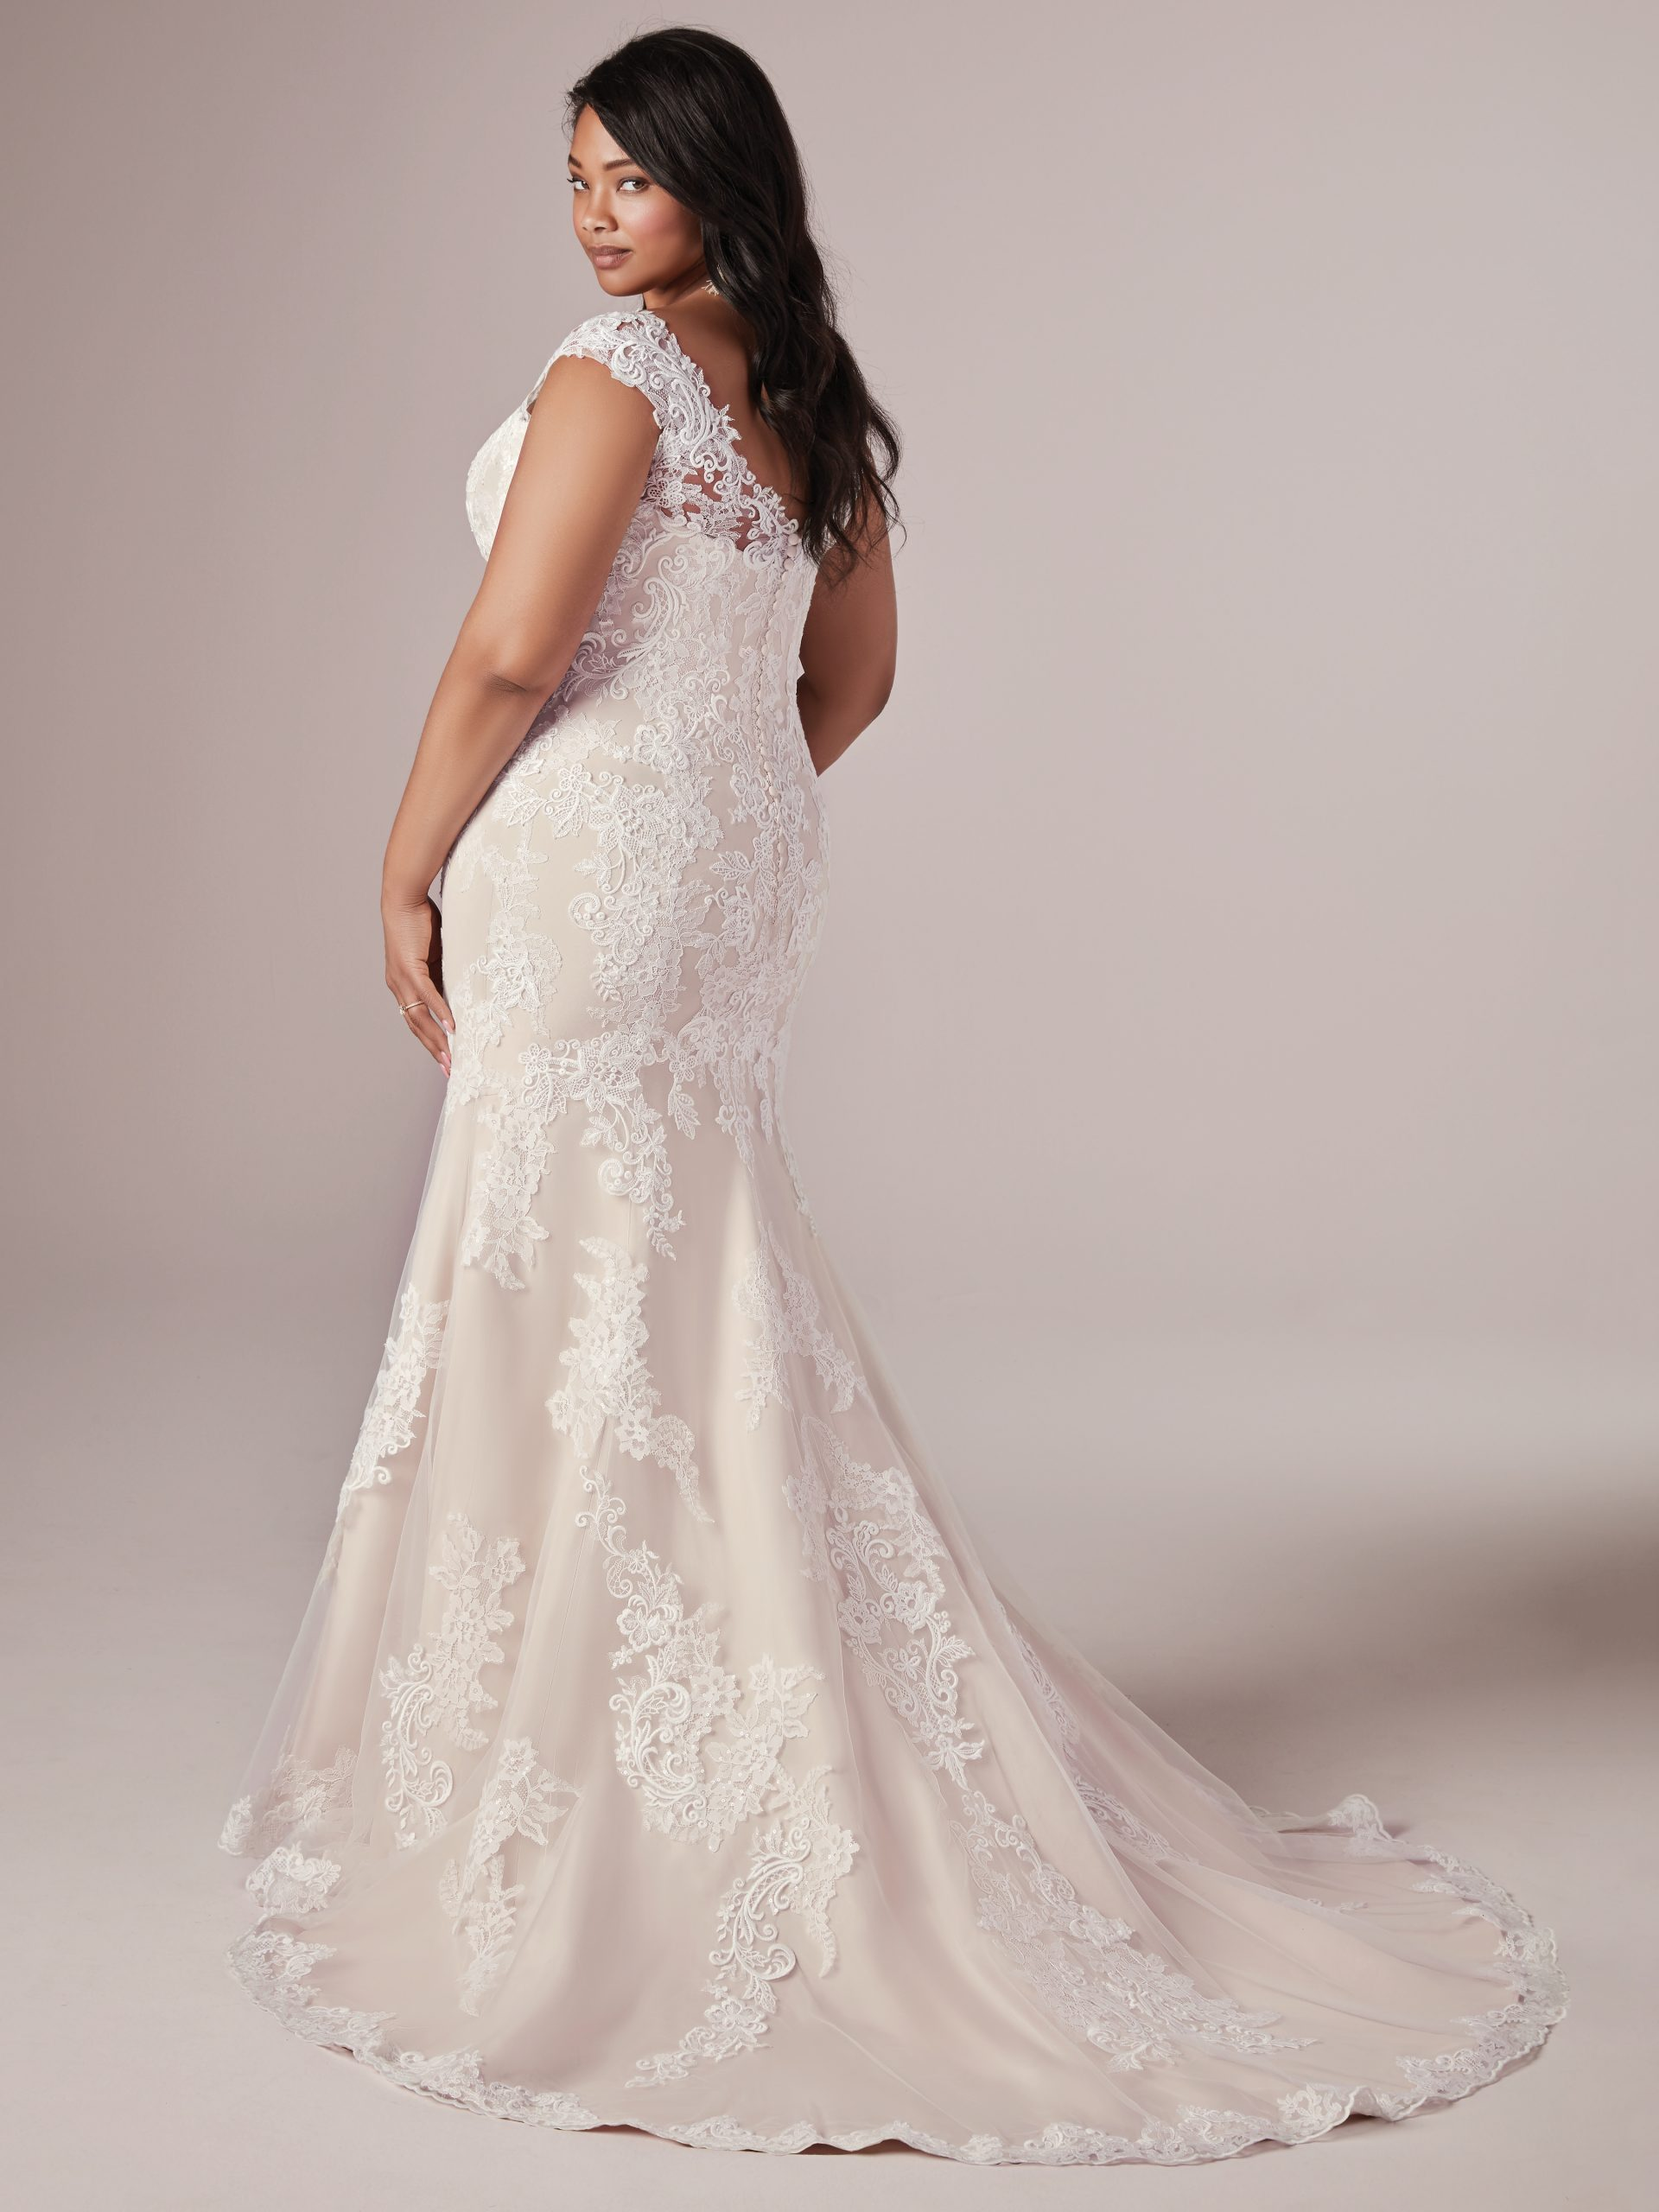 Plus Size Model Wearing Lace Fit and Flare Wedding Dress Called Daphne Lynette by Rebecca Ingram